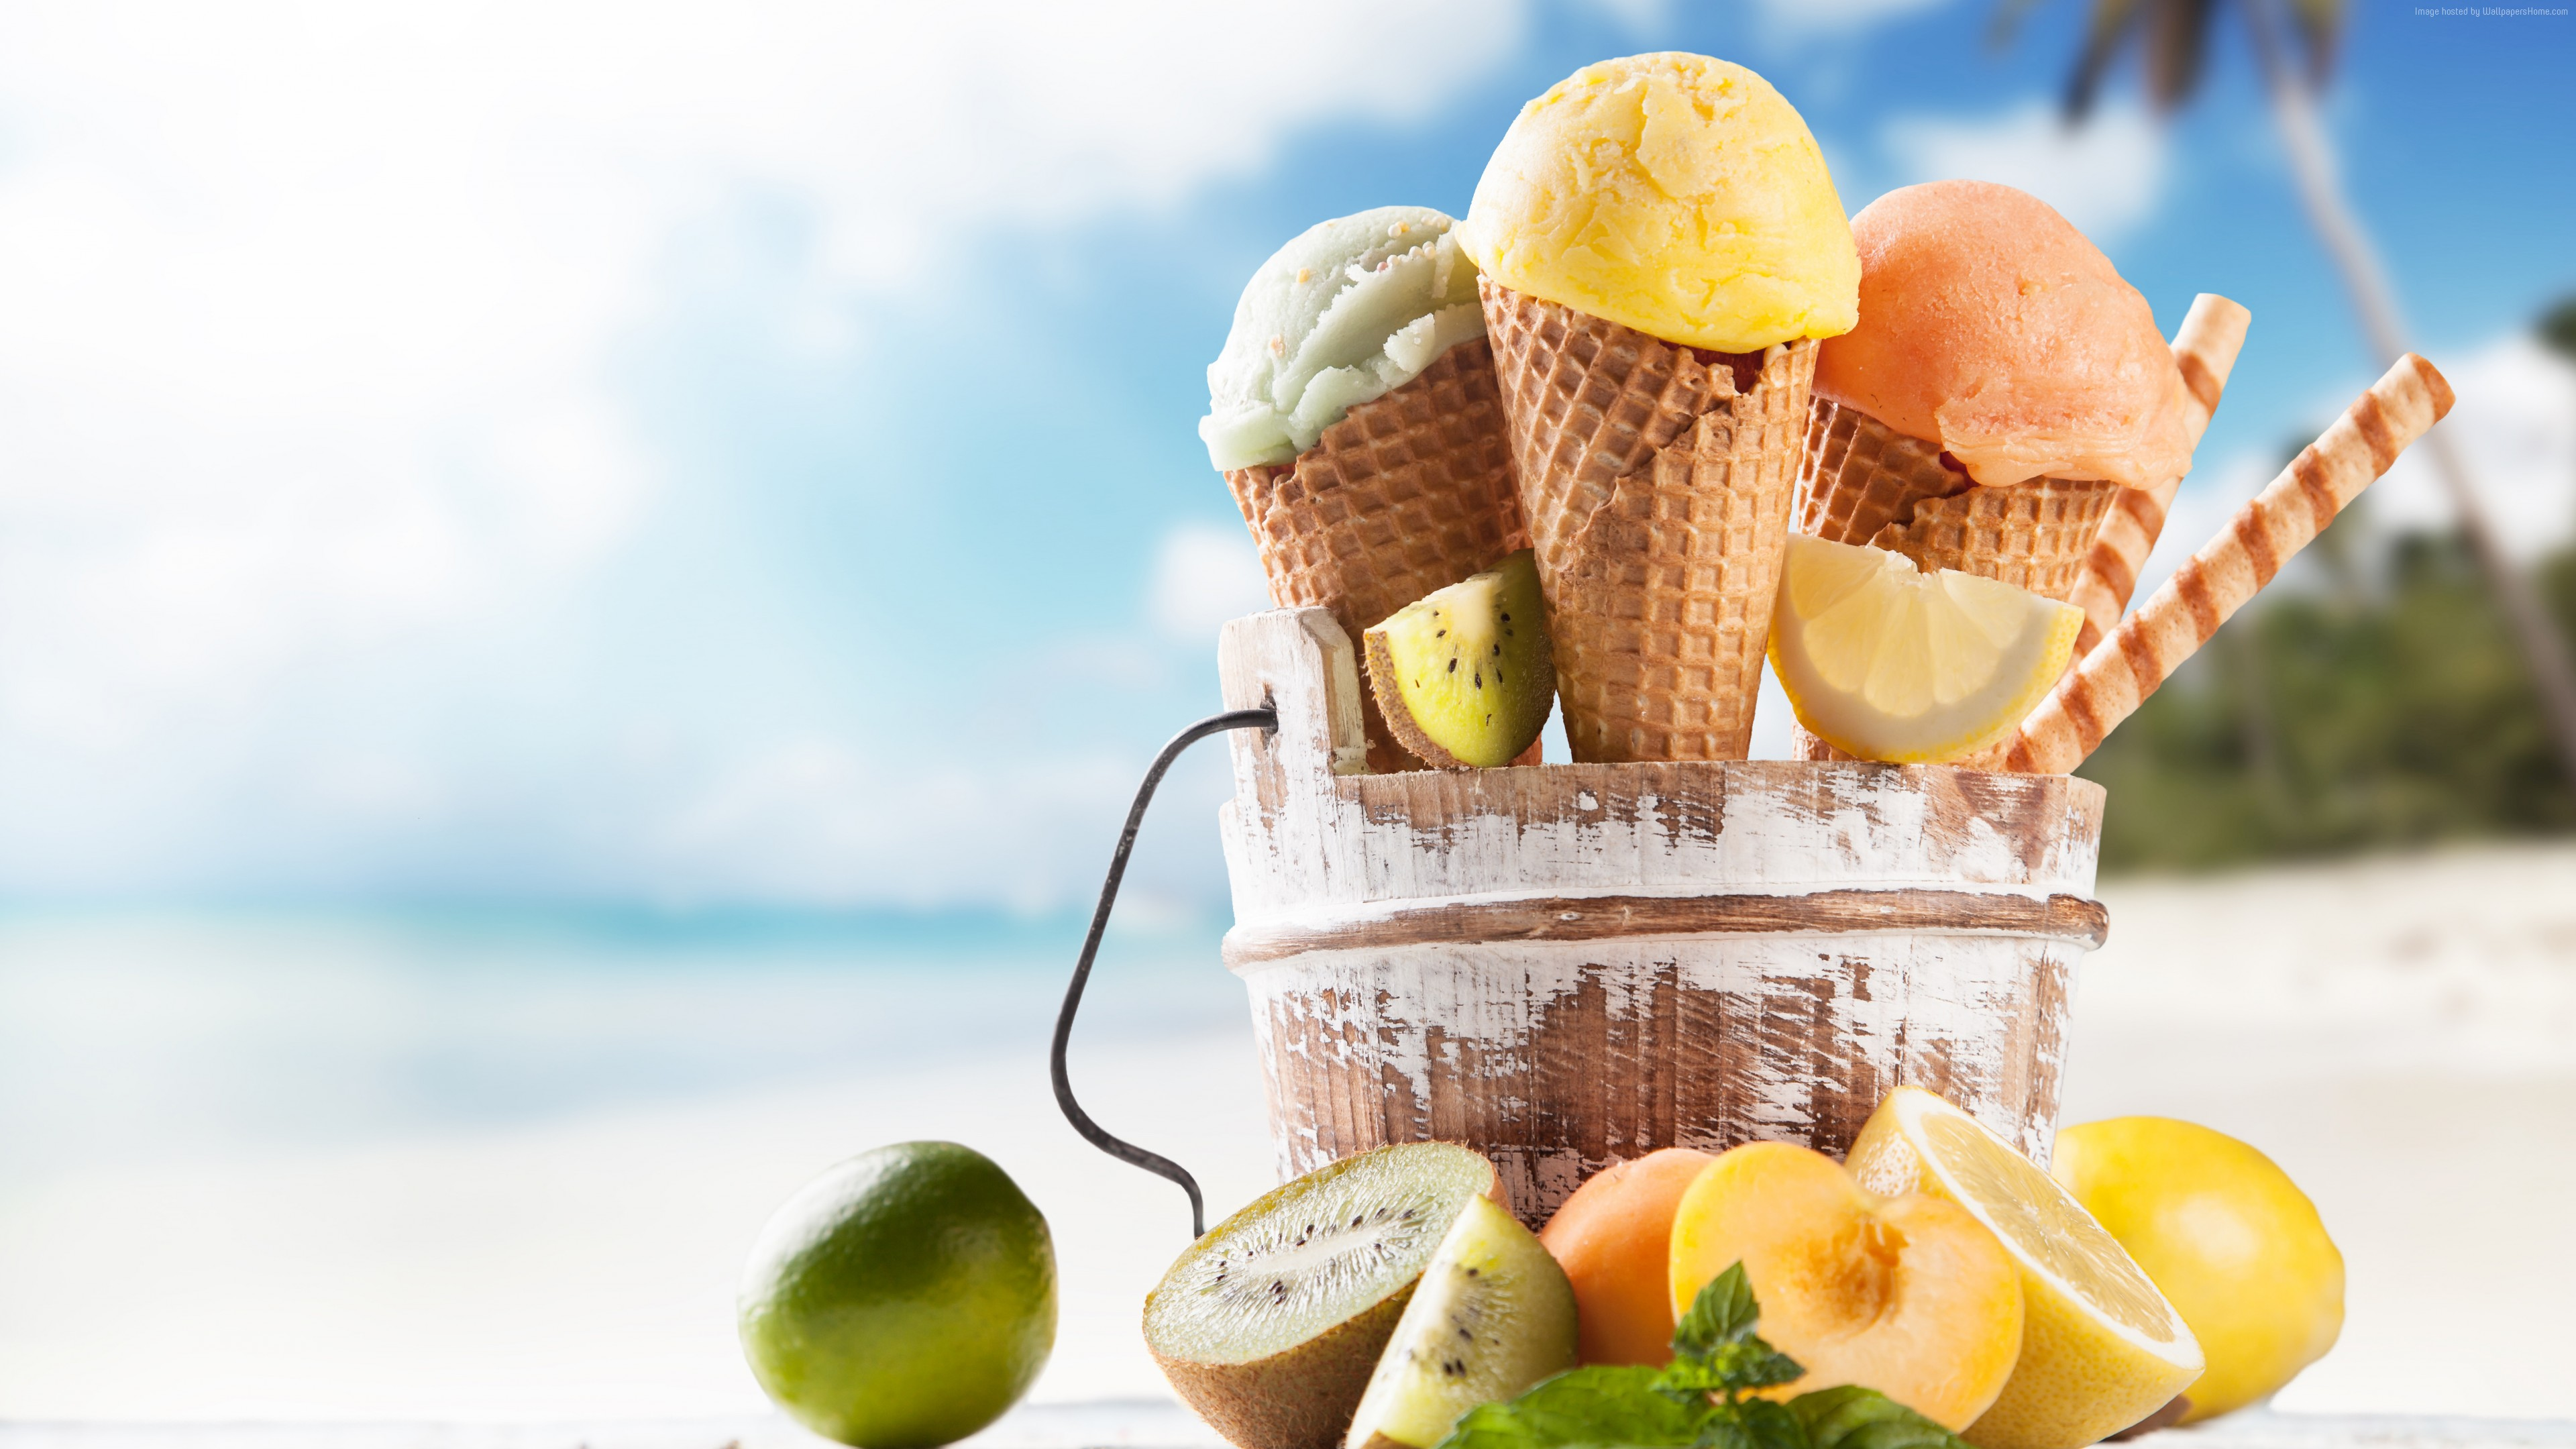 Wallpaper ice cream, beach, lemon, apricot, lime, delicious, 8k, Food